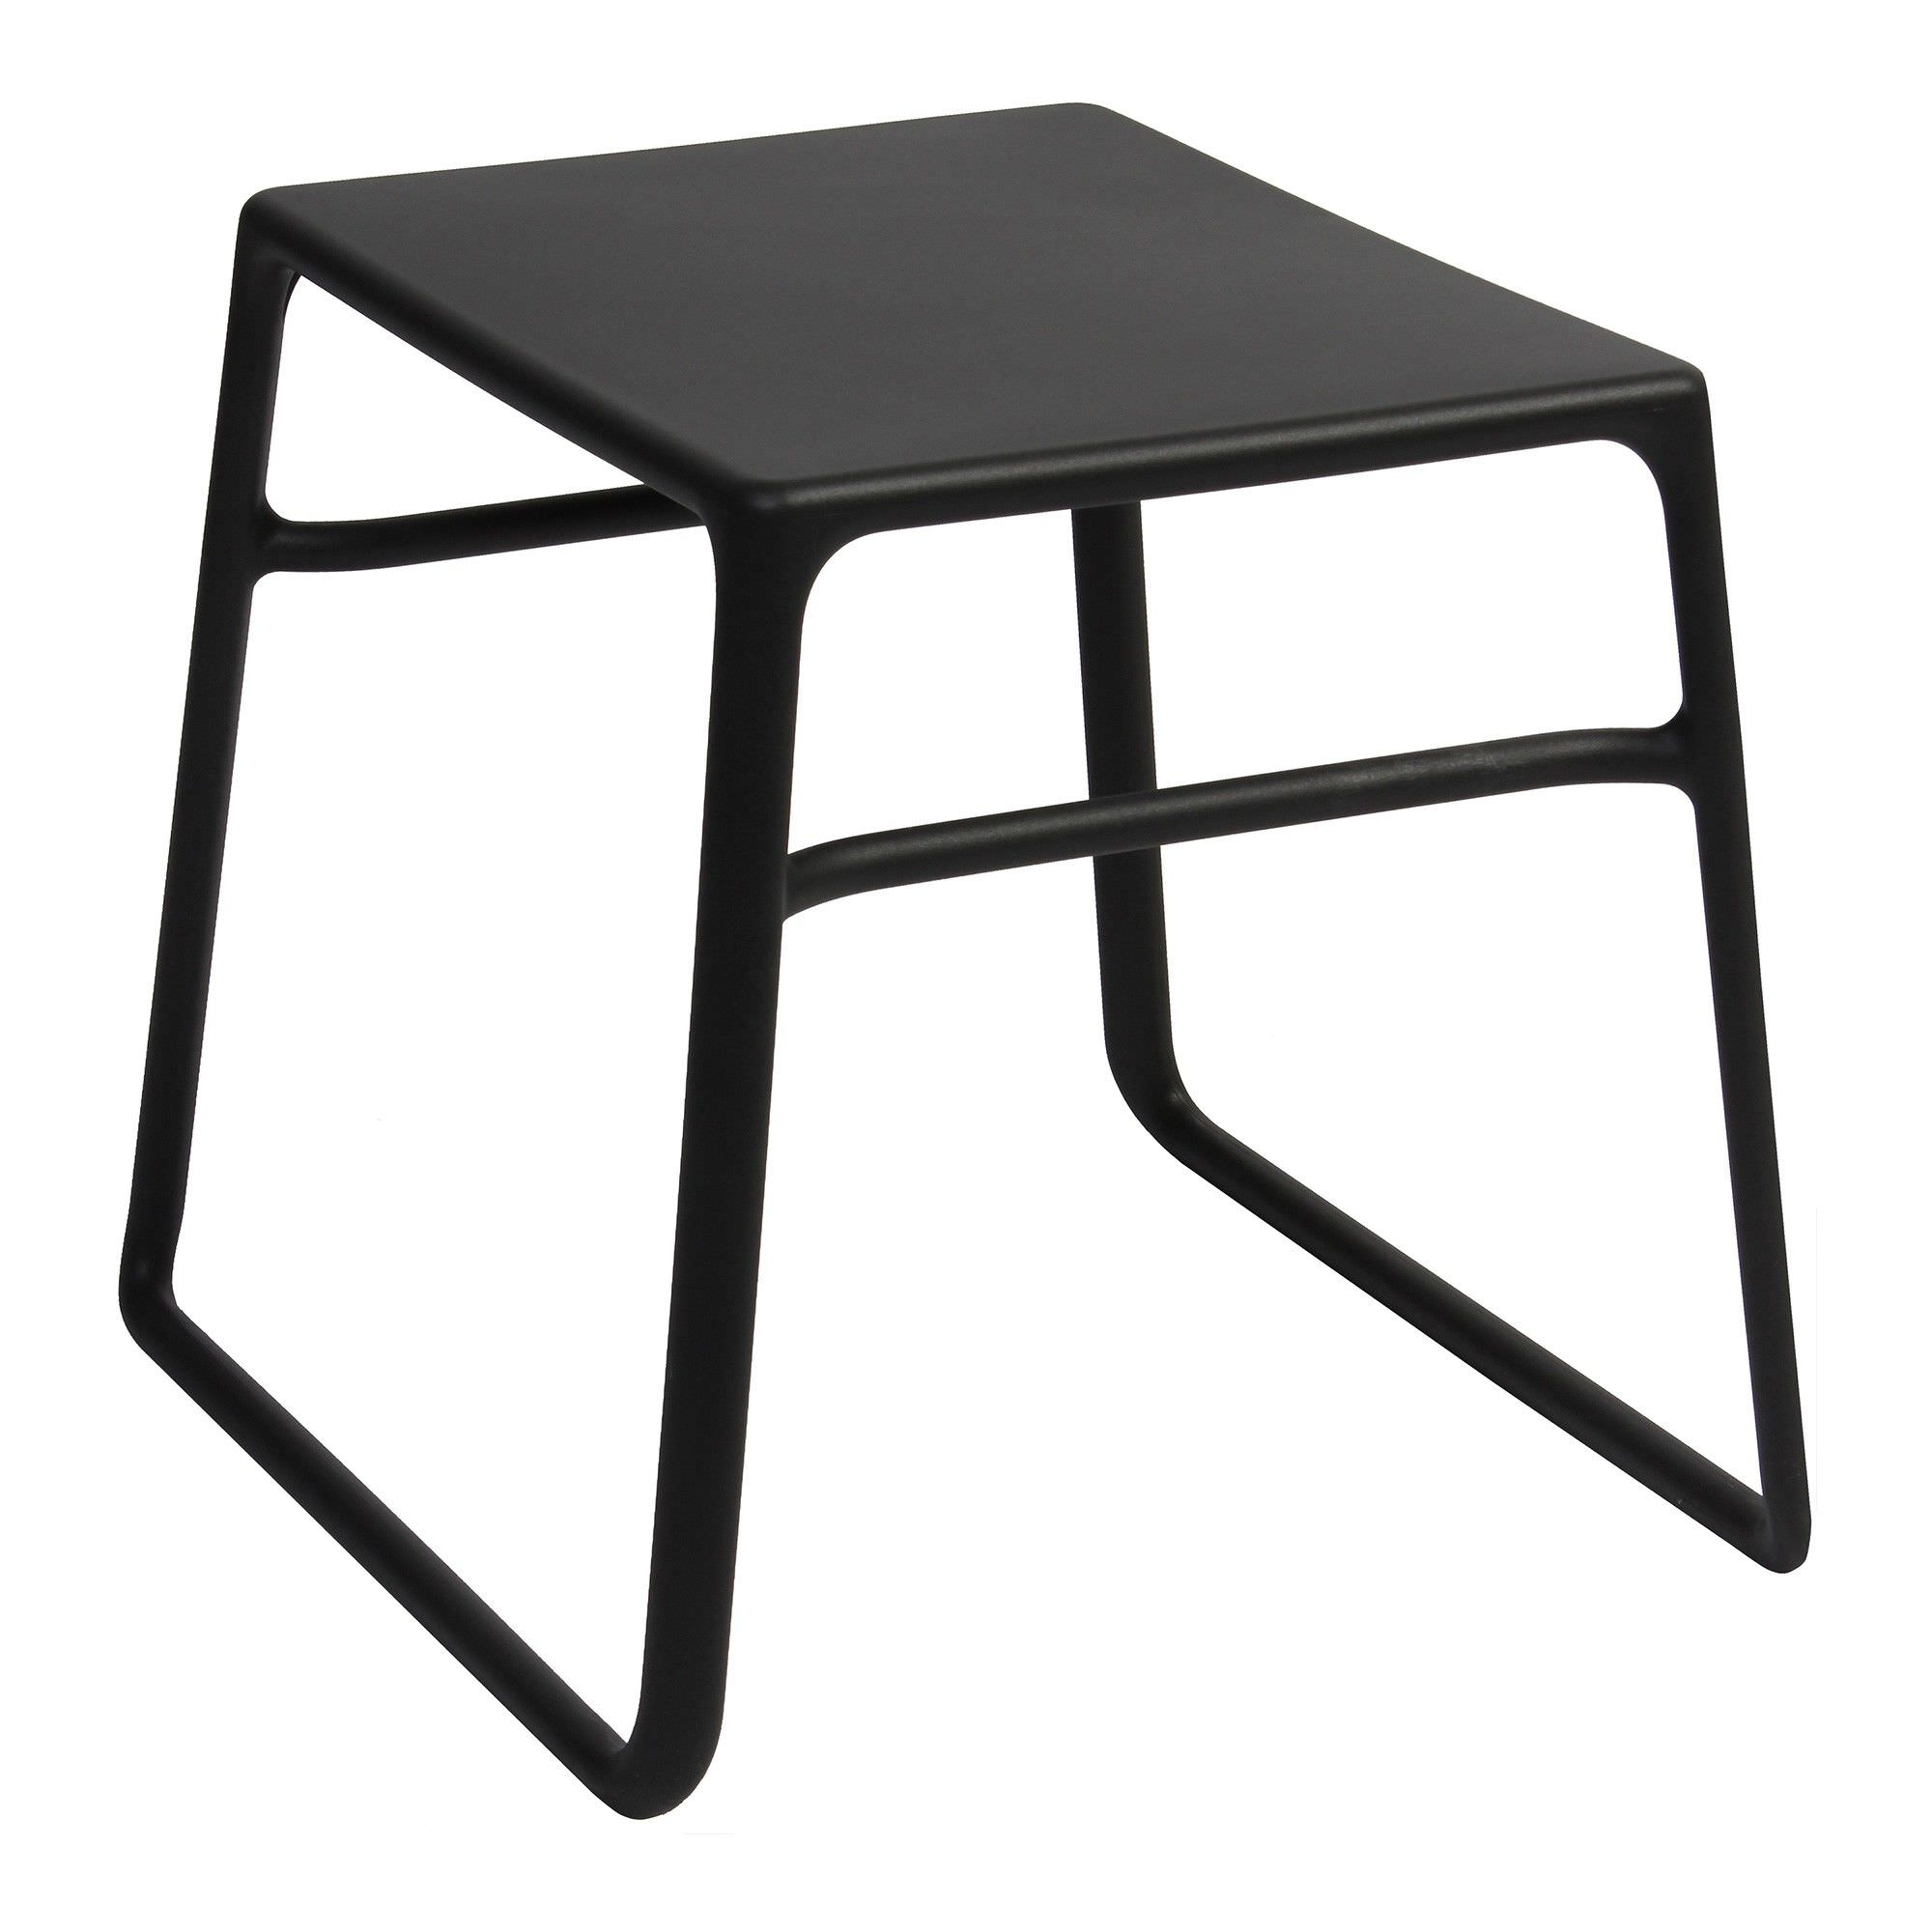 Pop Italian Made Commercial Grade Outdoor Side Table, Anthracite